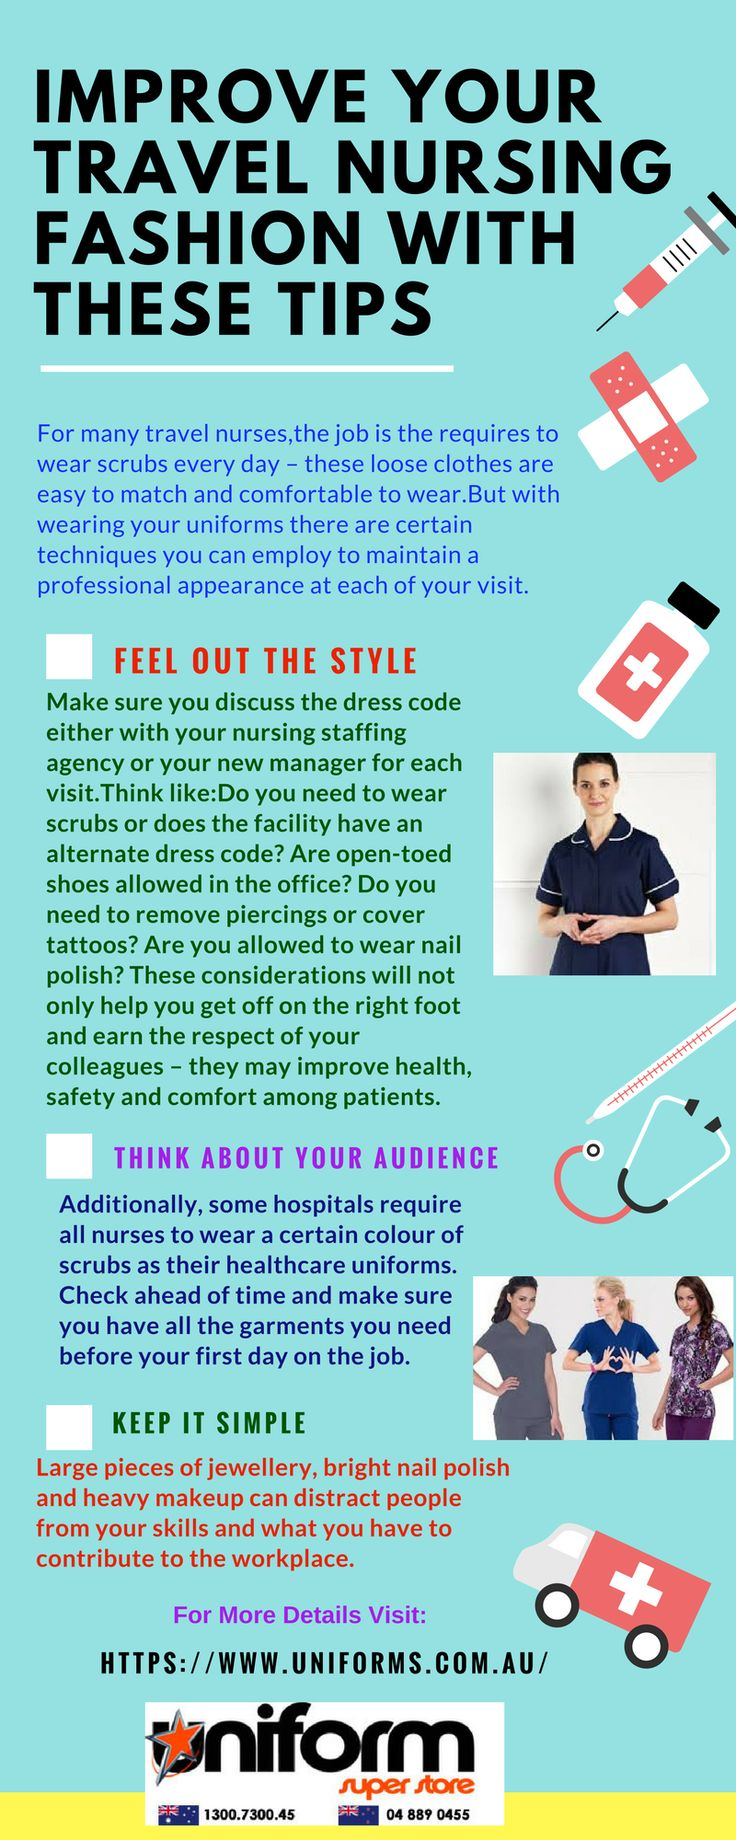 For travel nurses uniforms plays very important role and if used wisely,these healthcare uniforms can maintain their hygiene and fashion both.